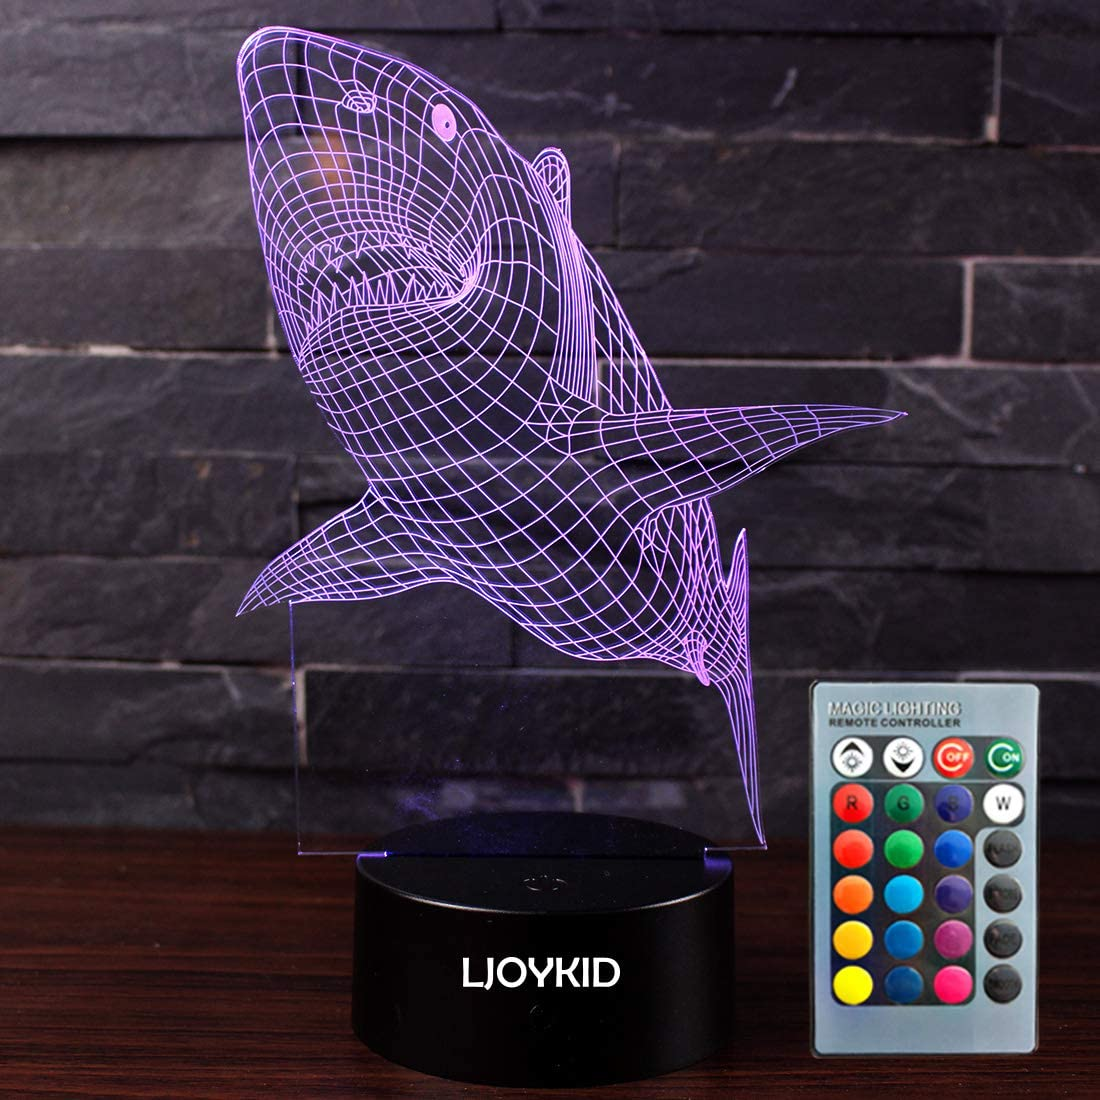 LJOYKID 3D Led Night Light Lamps - Optical Illusion 7 Colors Touch Table Desk Visual Lamp with Remote Control for Gifts for Children Kids (Shark)